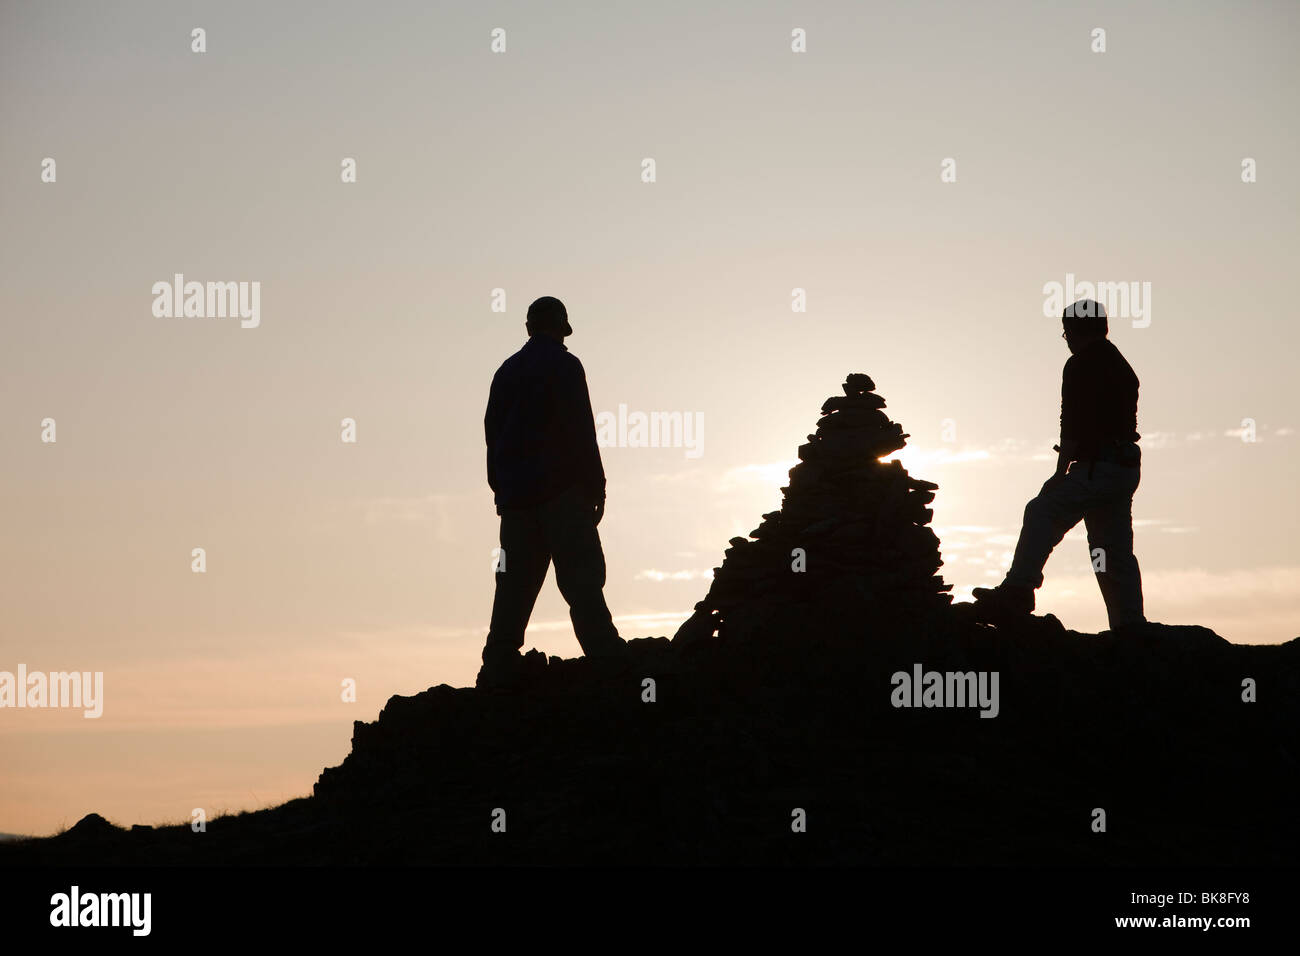 Hill walkers on Nab Scar in the Lake District, Cumbria, UK, at dusk. - Stock Image